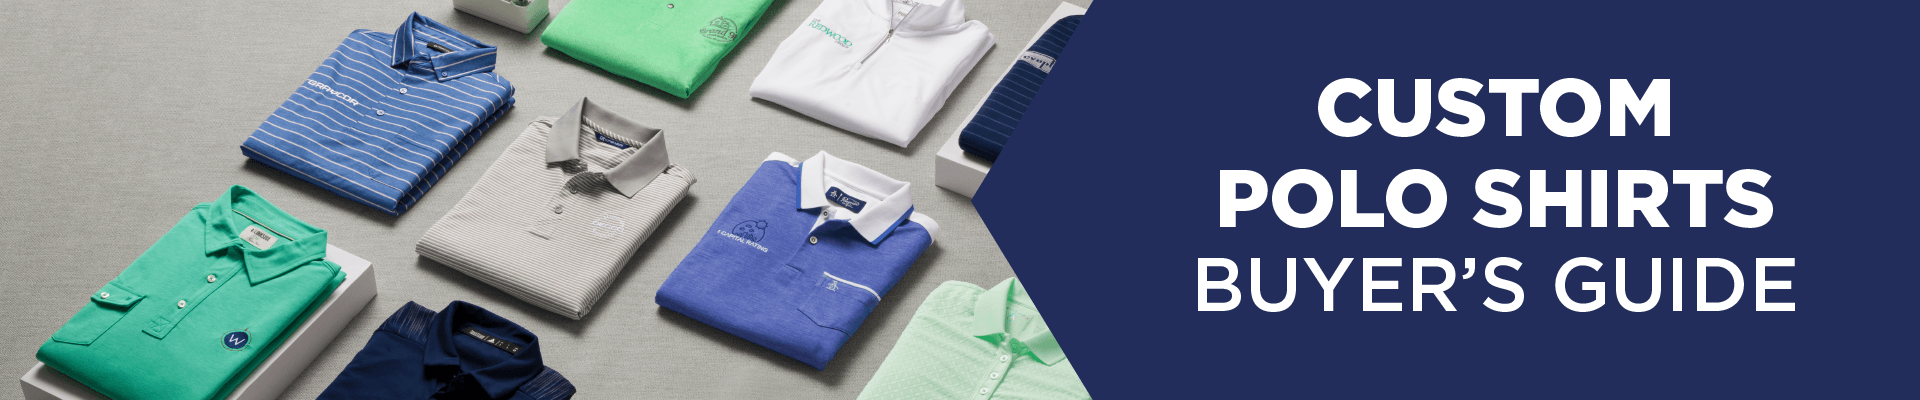 Custom Polo Shirts Buyers Guide